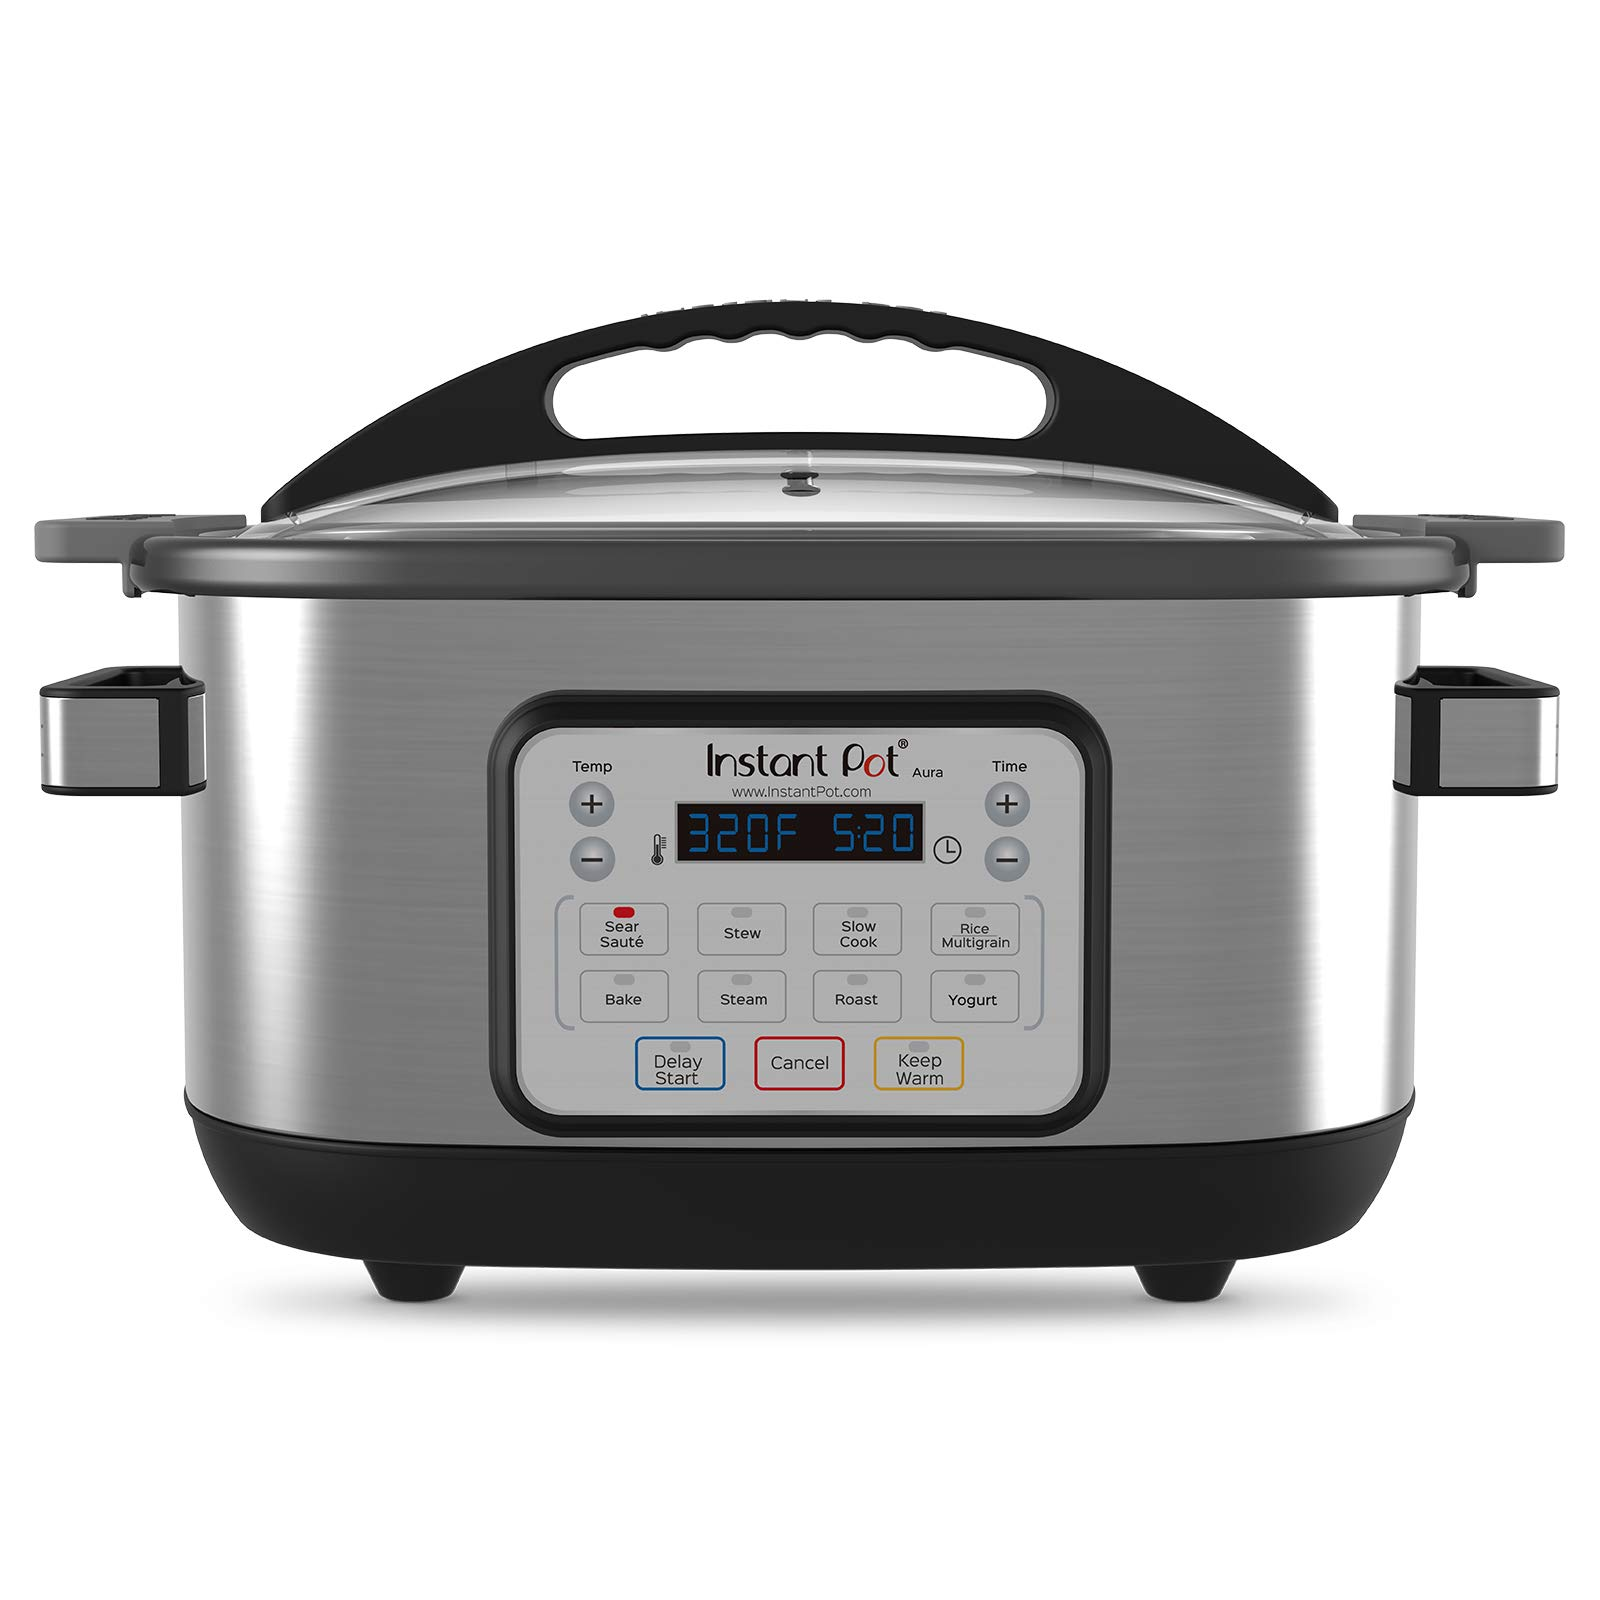 Instant Pot Aura 10-in-1 Multicooker Slow Cooker,6 Qt, 10 One-Touch Programs